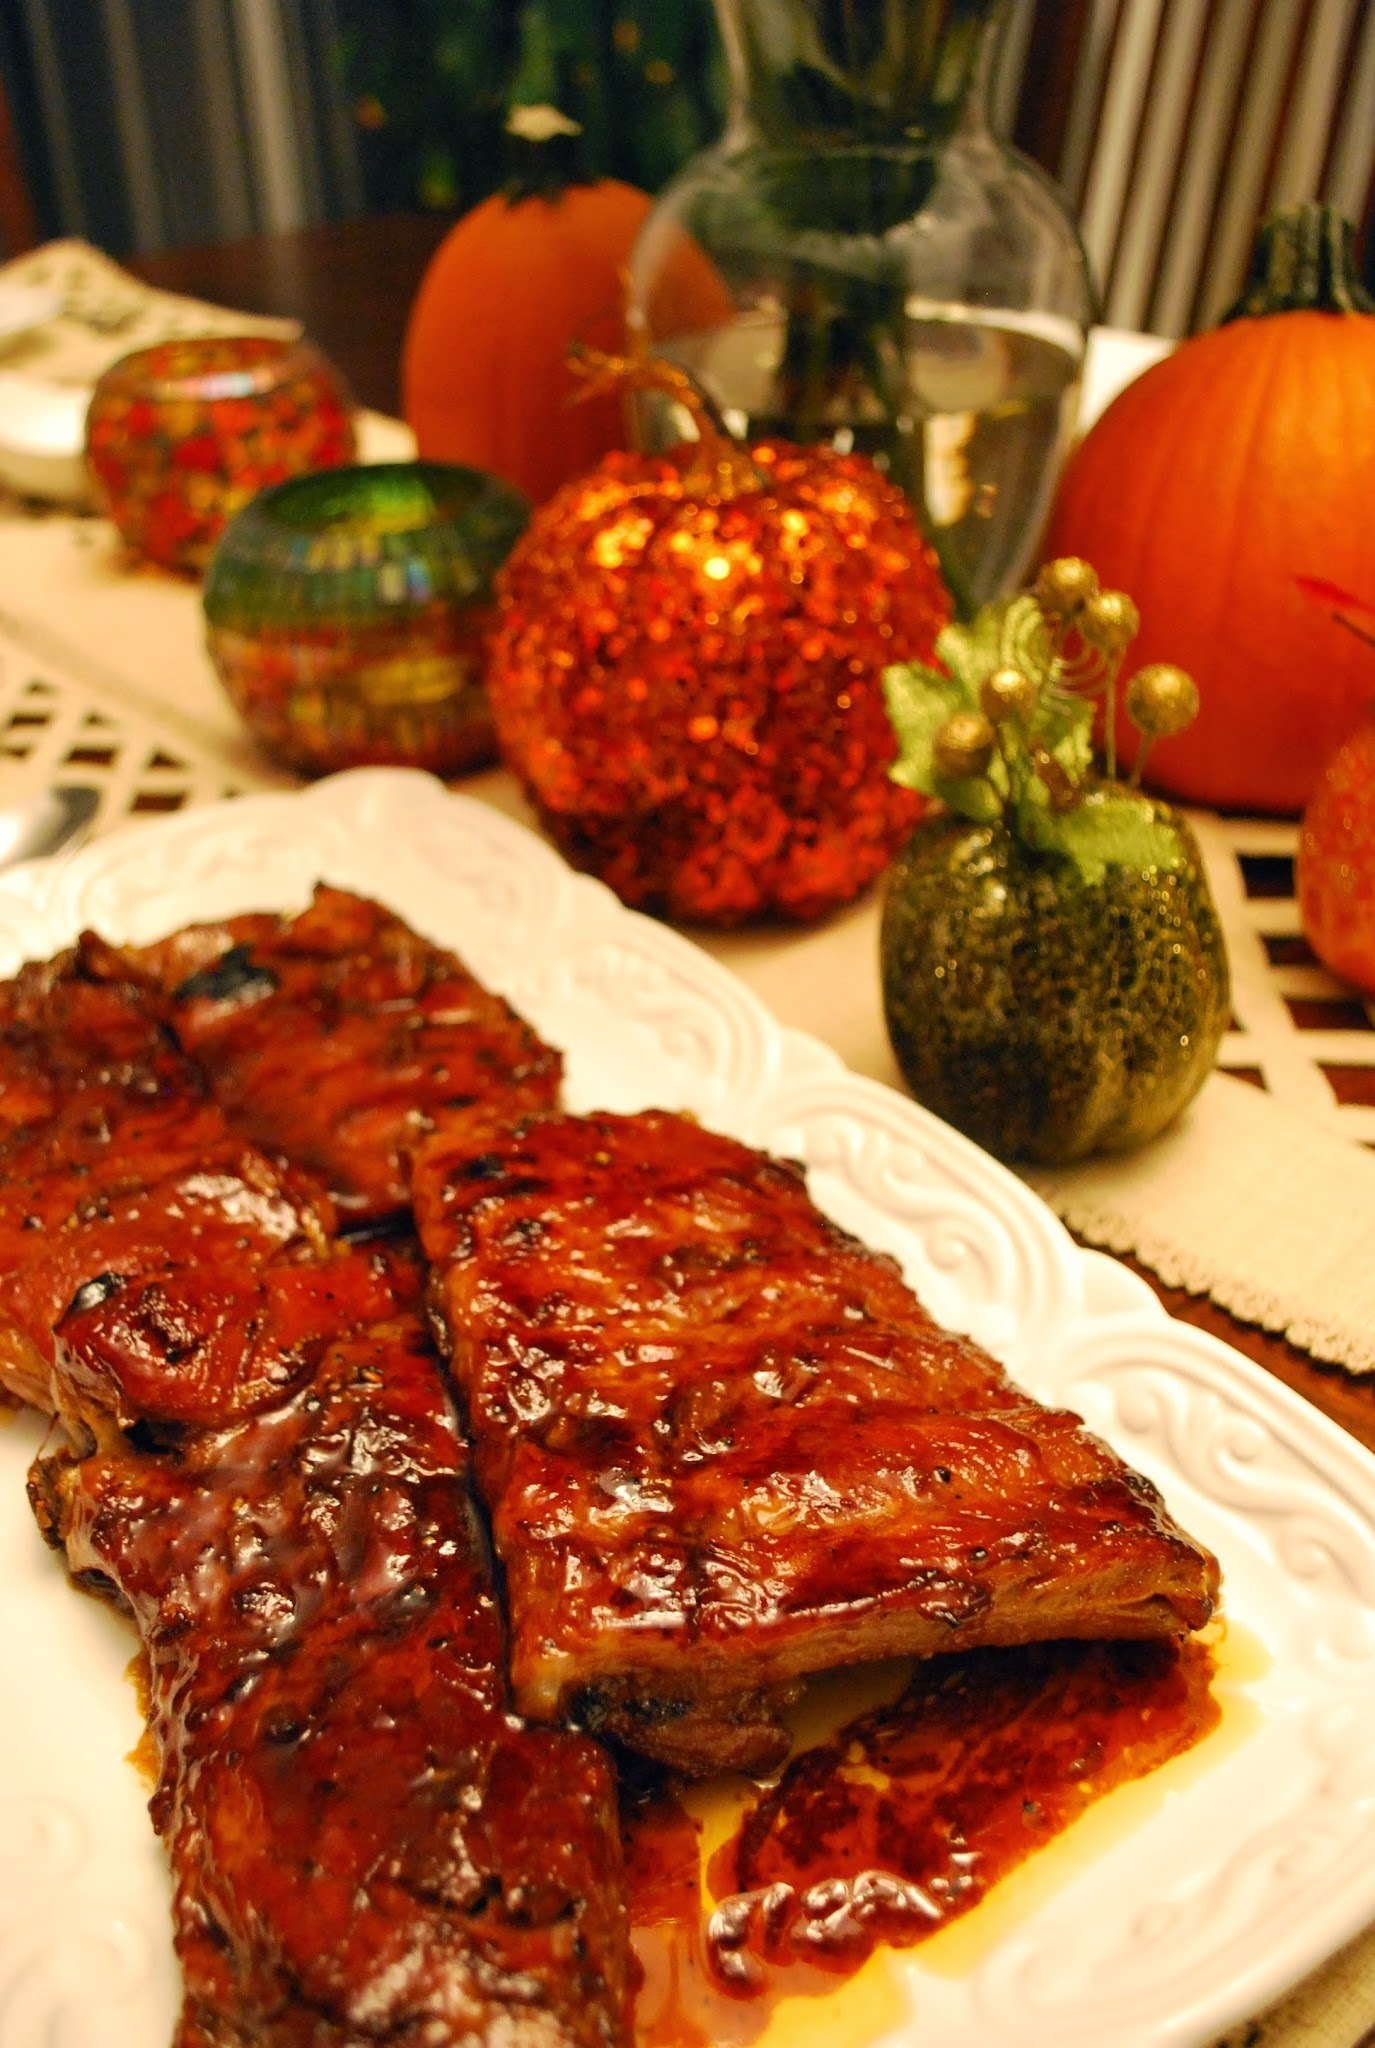 Falling off the Bones Baked Ribs in Spicy Barbecue Sauce